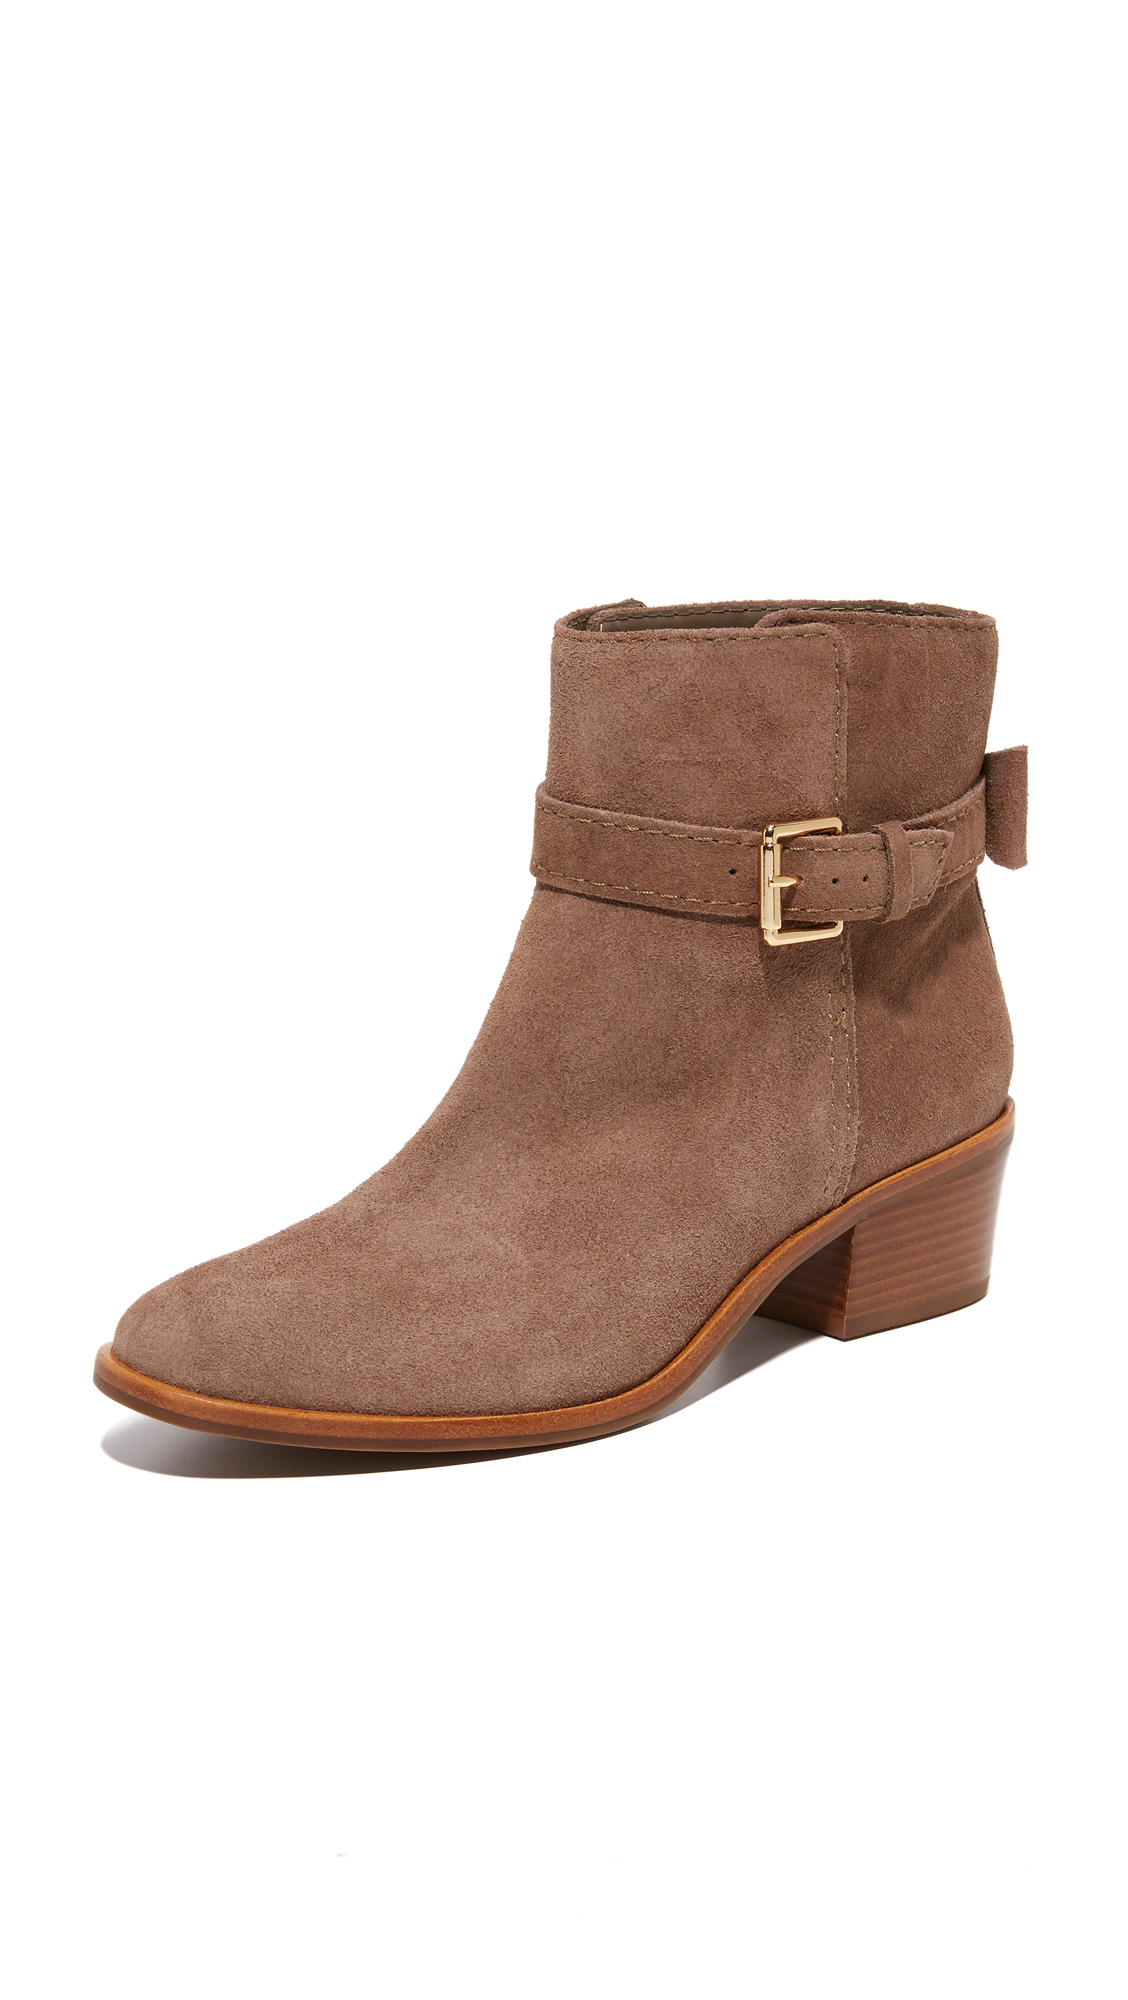 Kate Spade New York Taley Booties - Mousse